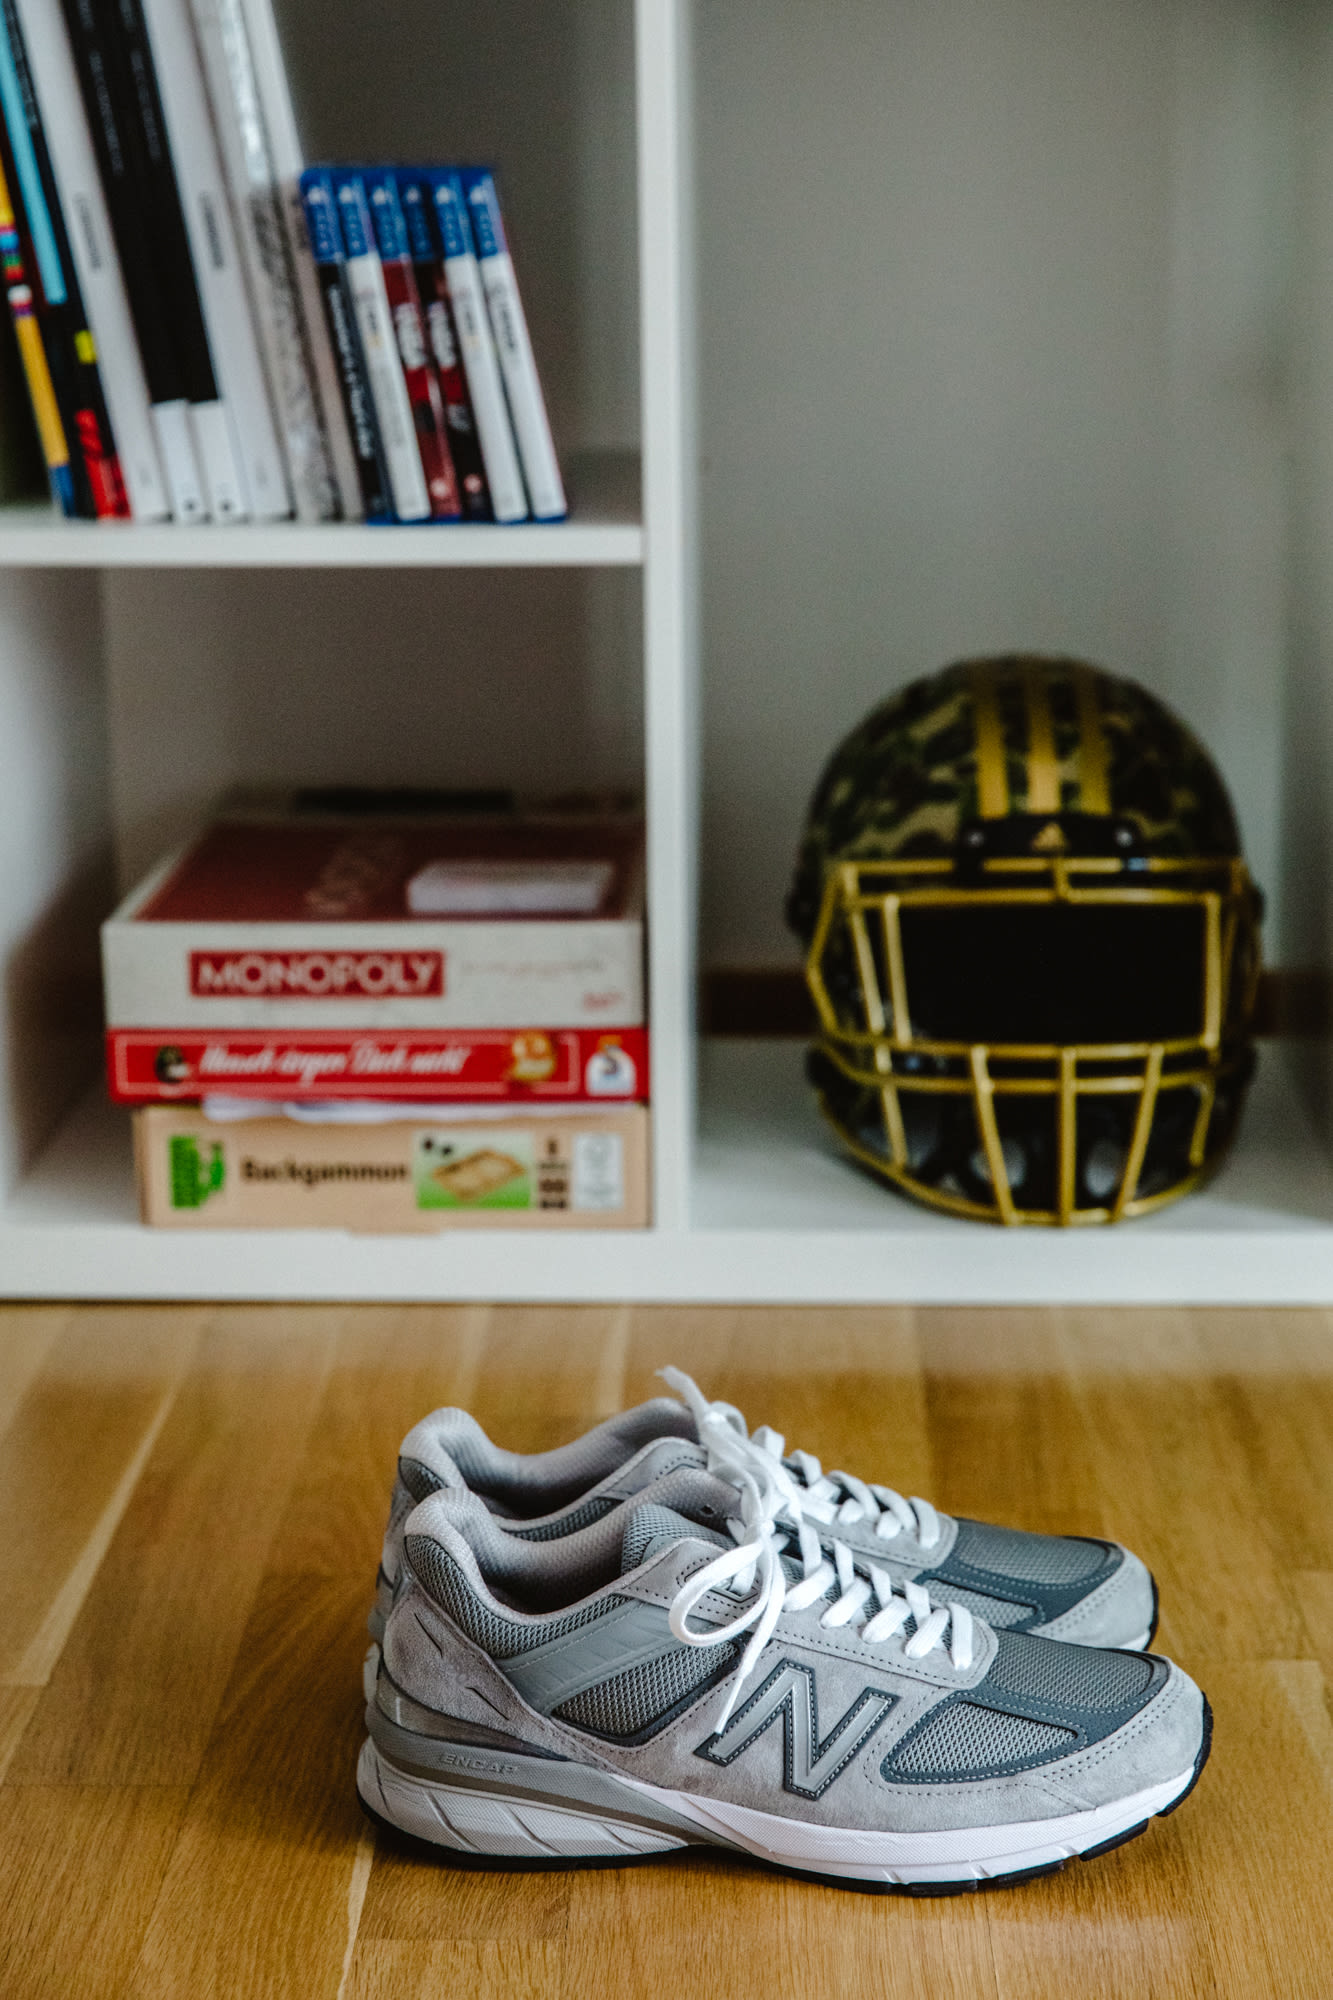 Flight Case Sneakers: Fabian Gorsler at Home in Berlin, image features New Balance 990v5